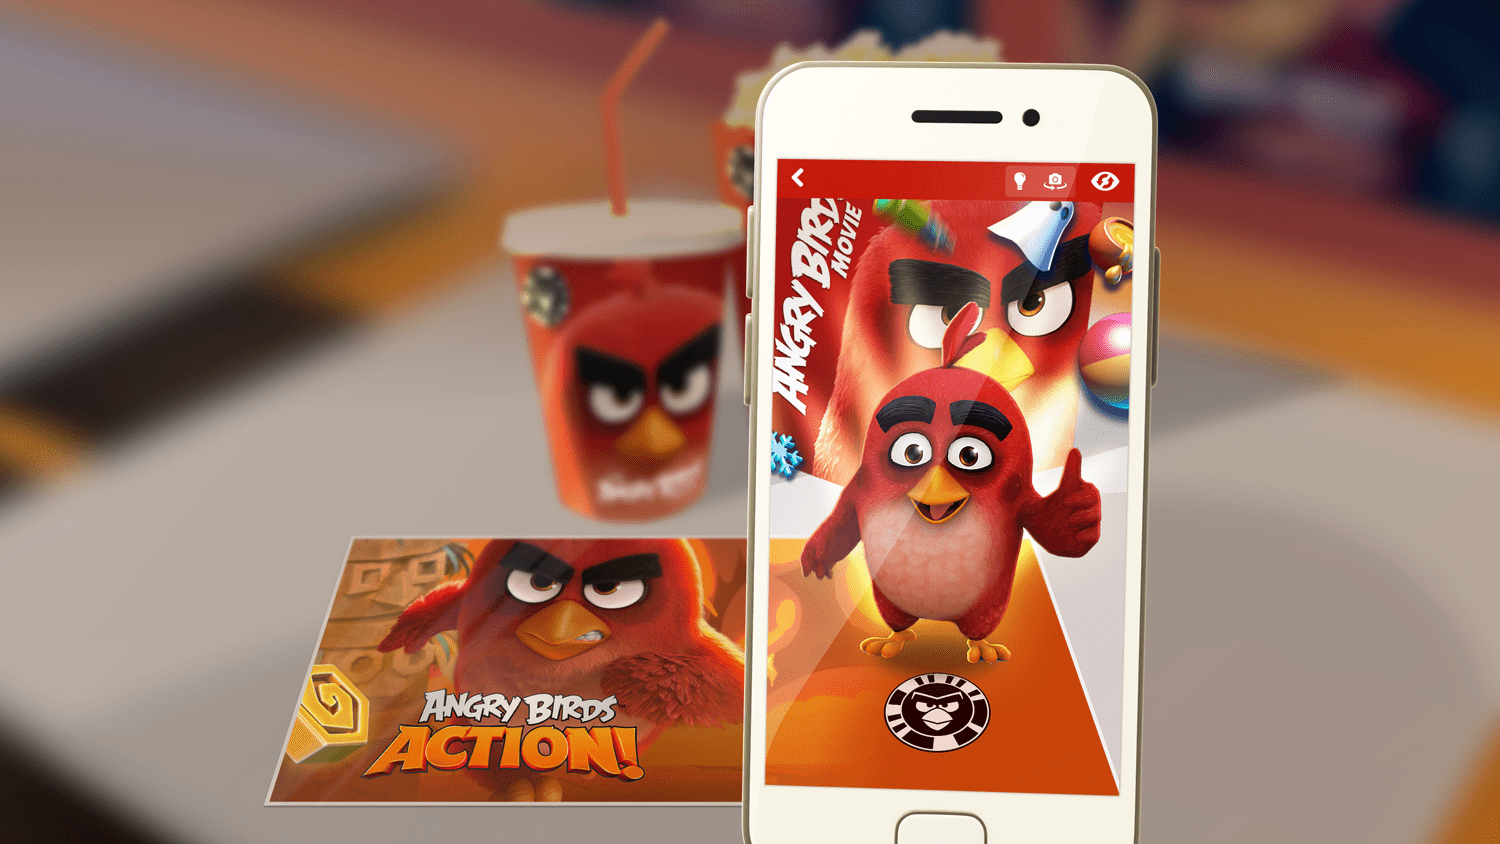 The Angry Birds Movie BirdCodes McDonald's mobile game